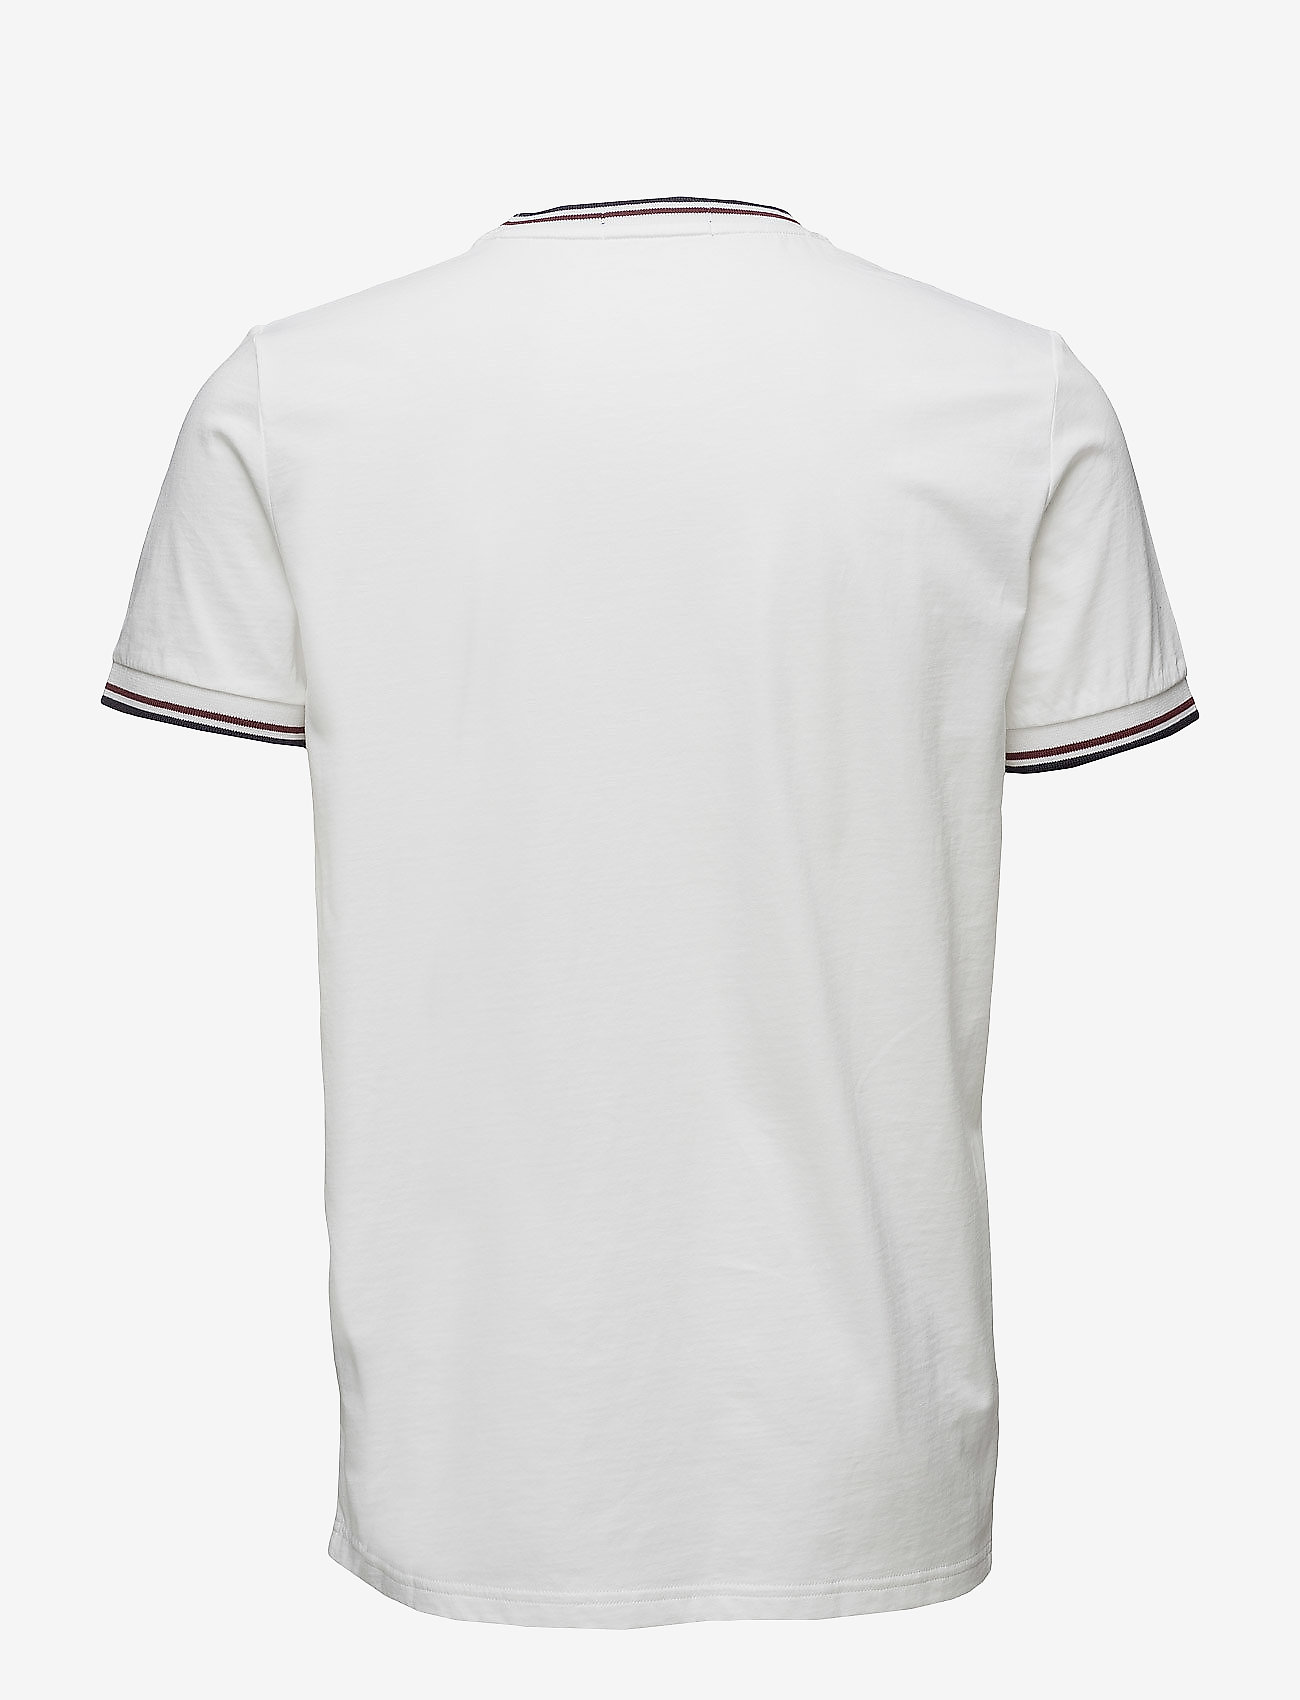 Fred Perry TWIN TIPPED T-SHIRT - T-skjorter WHITE - Menn Klær